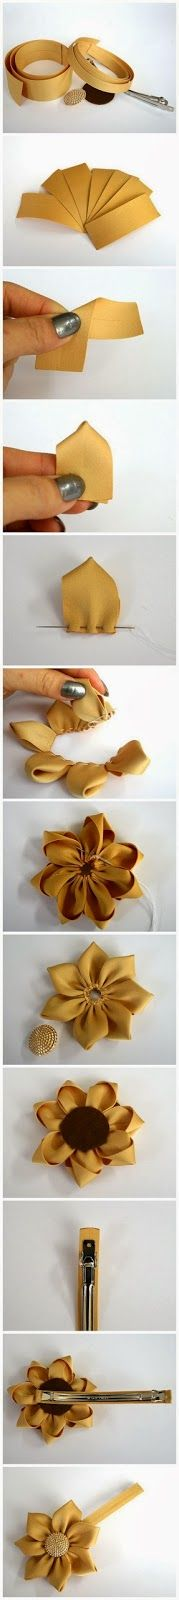 ribbon flower diy